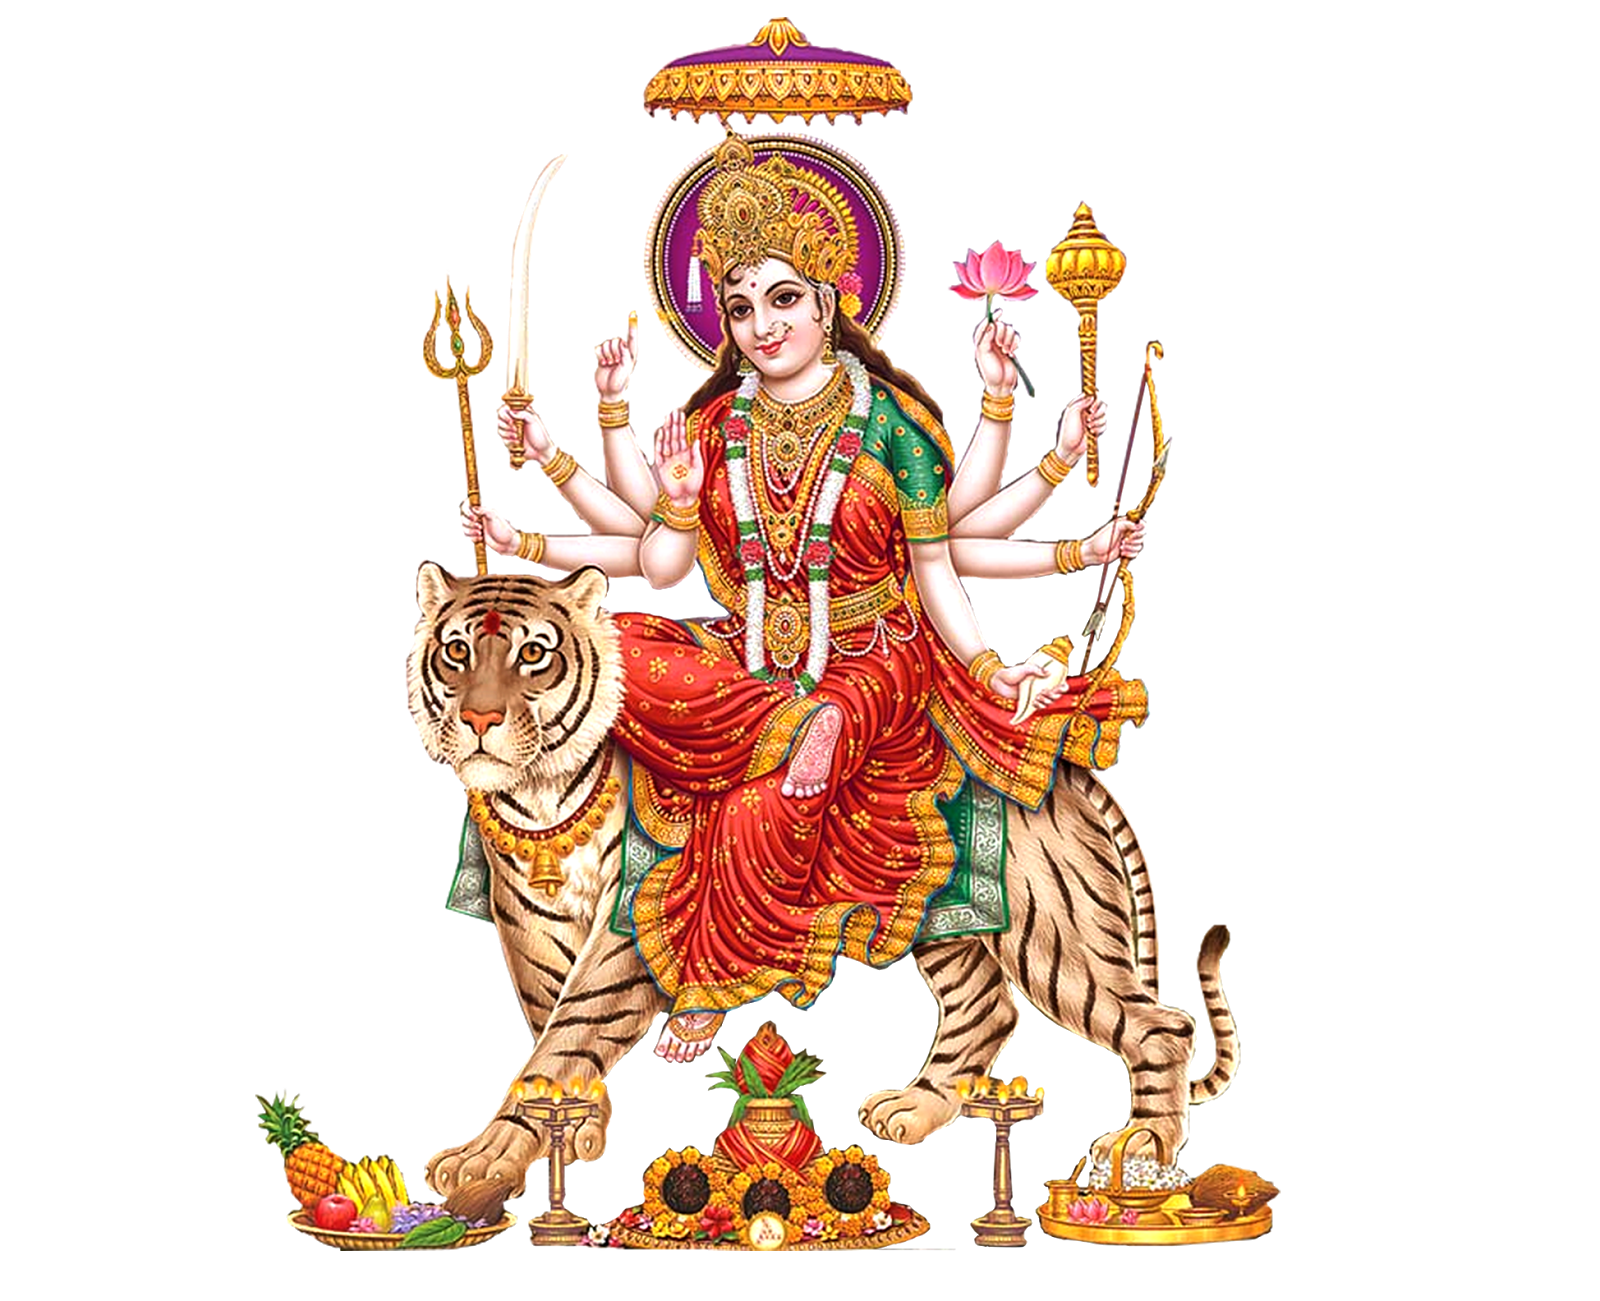 png images of Indian Gods Telugu vijayadashami wishes Quotes HD Wallpapers  2016 Vijayadashami wishes Quotes in - Maa Durga PNG HD